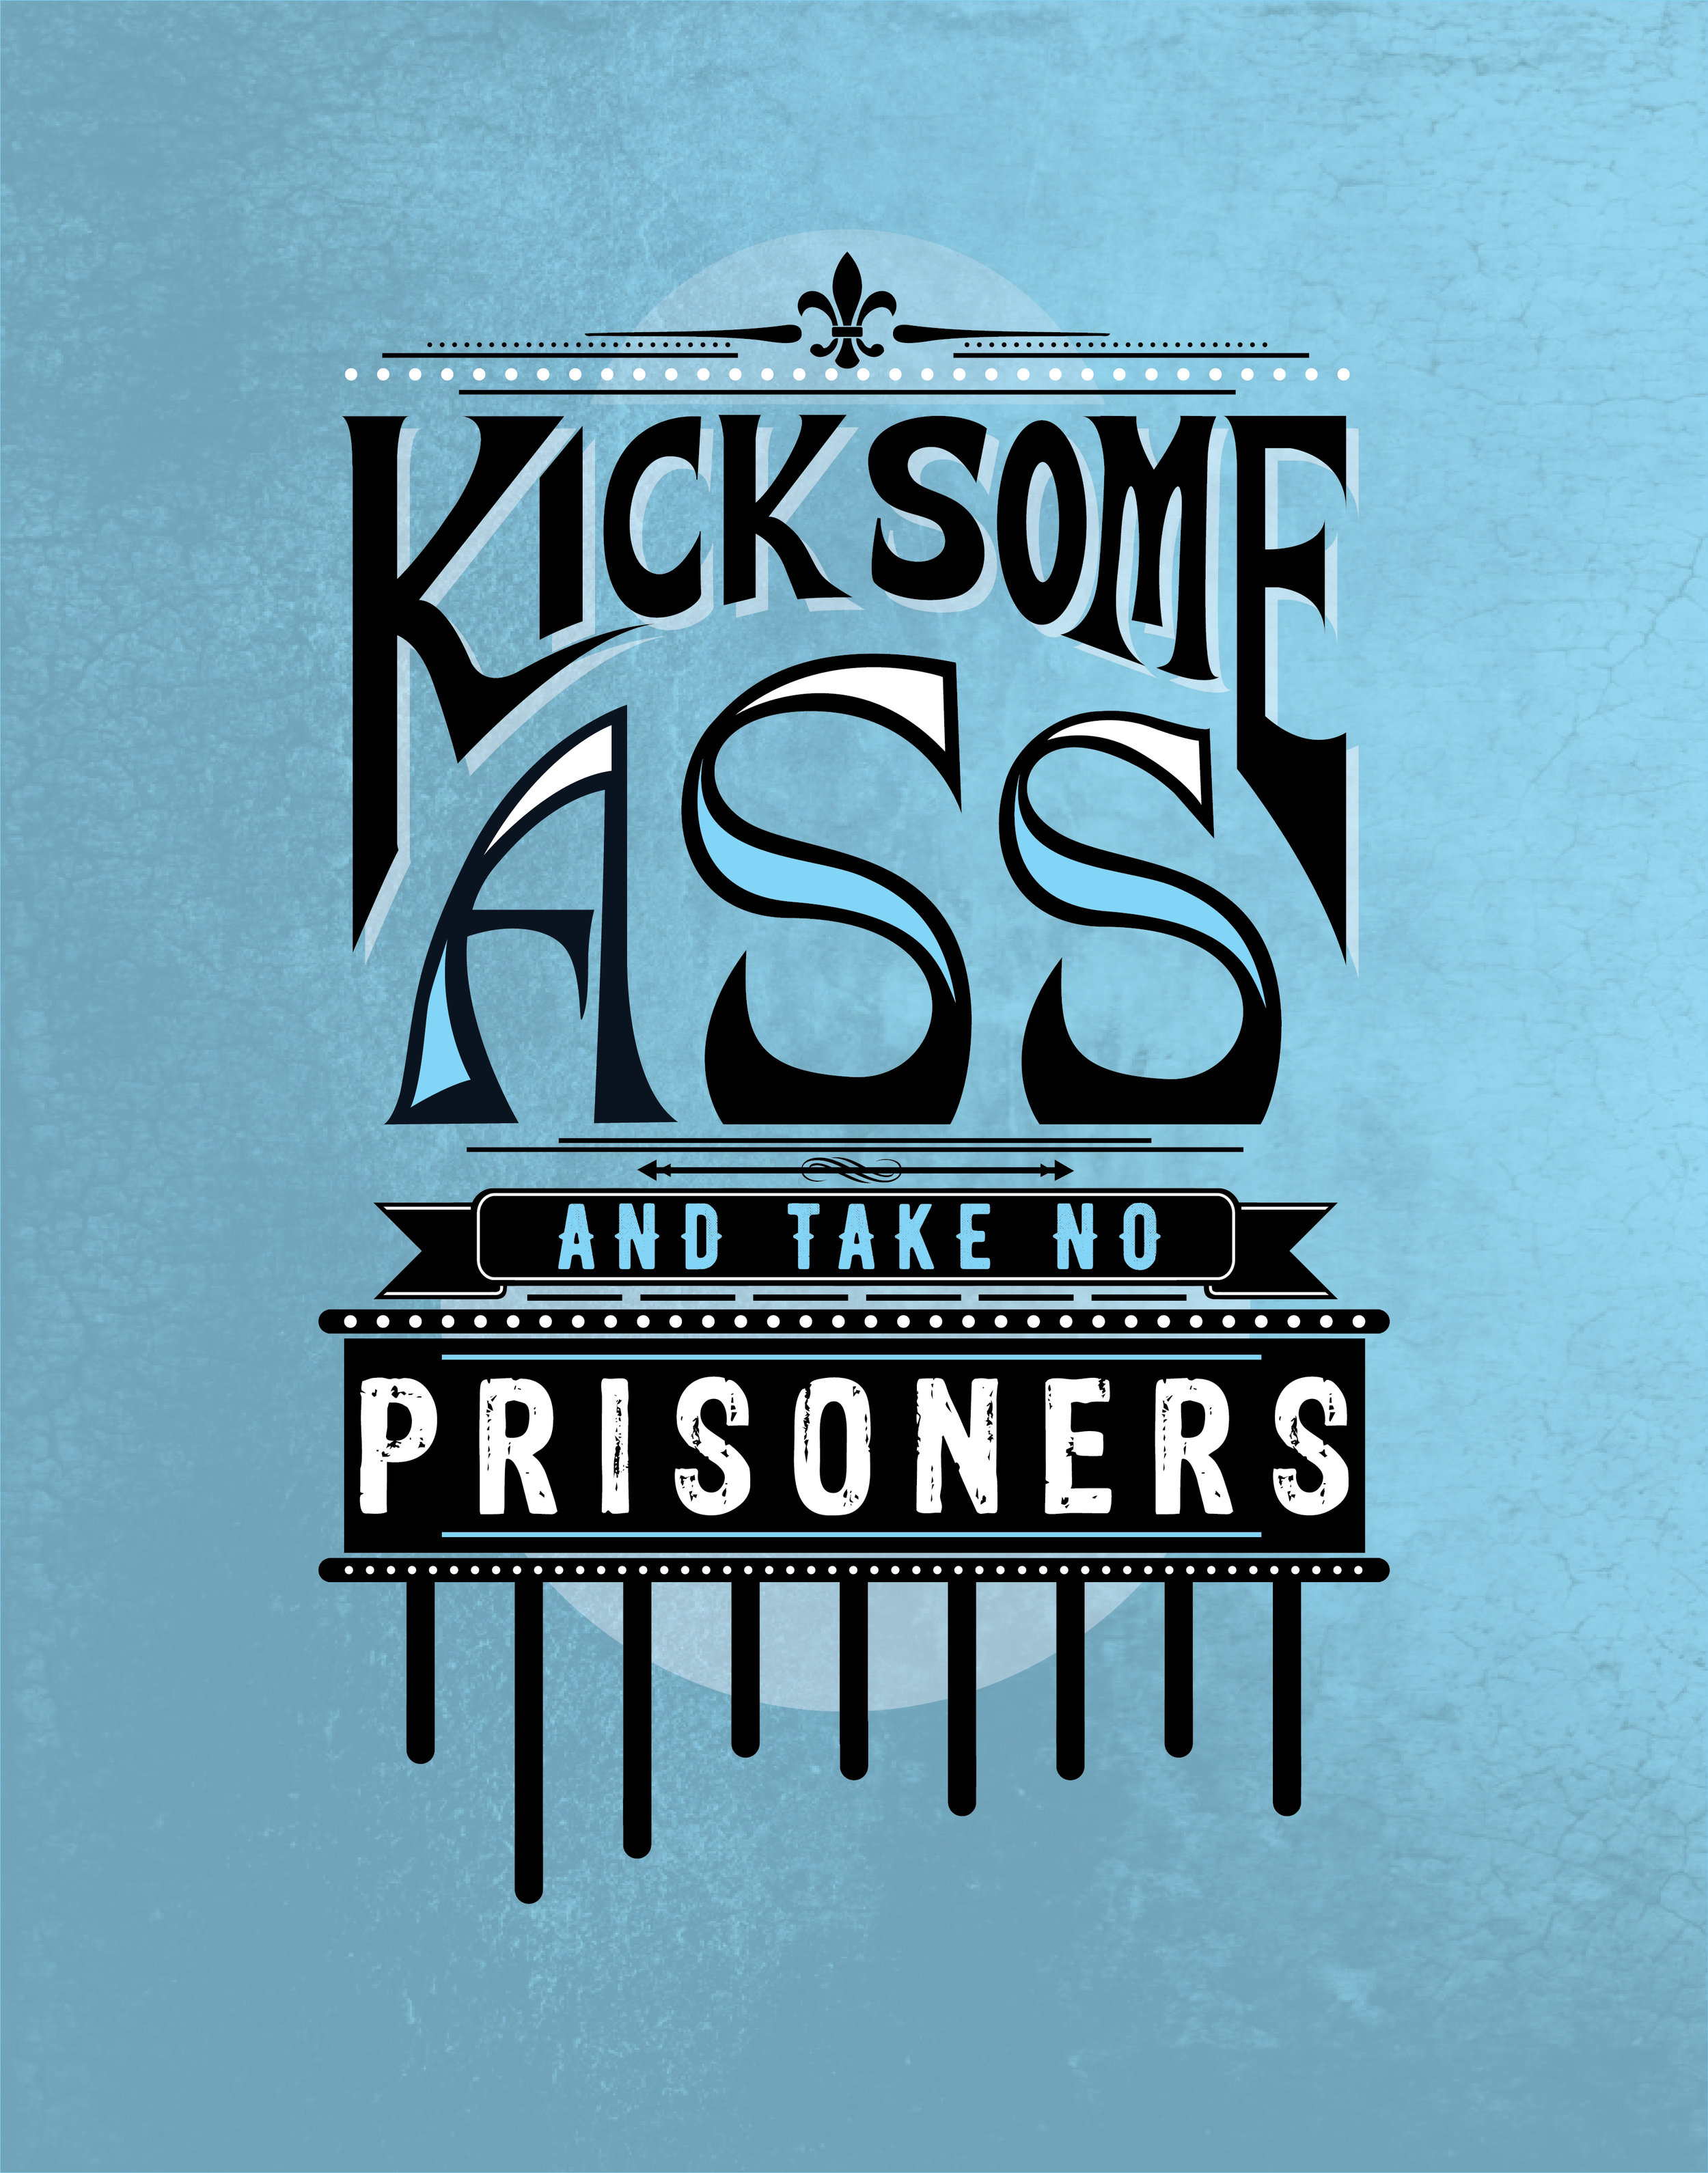 KICK SOME ASS